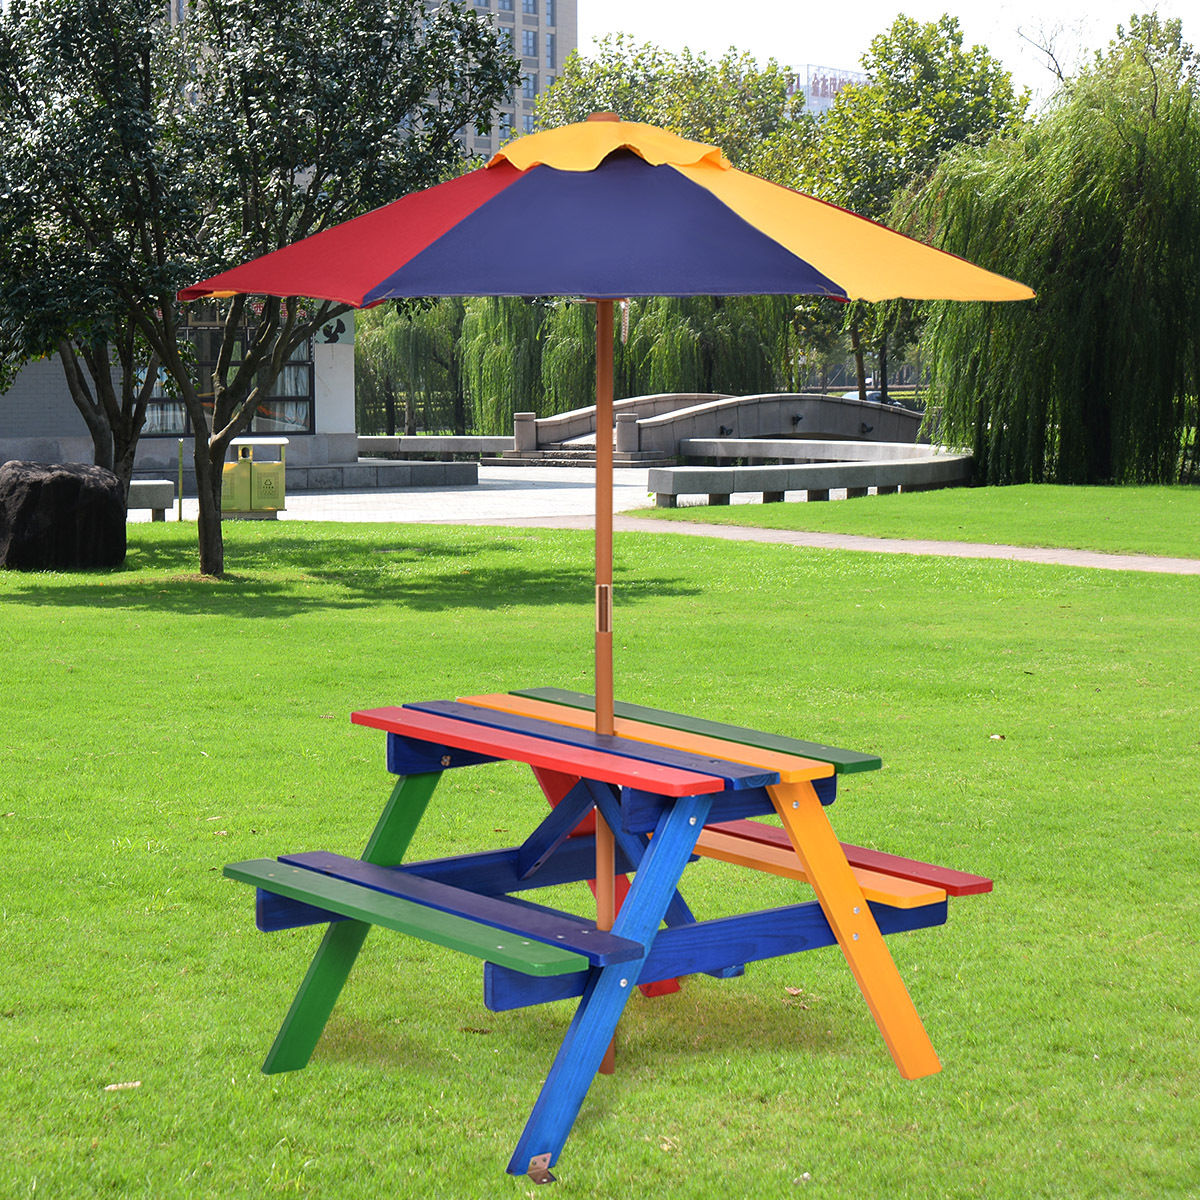 Costway 4 Seat Kids Picnic Table w Umbrella Garden Yard Folding Children Bench Outdoor by Costway